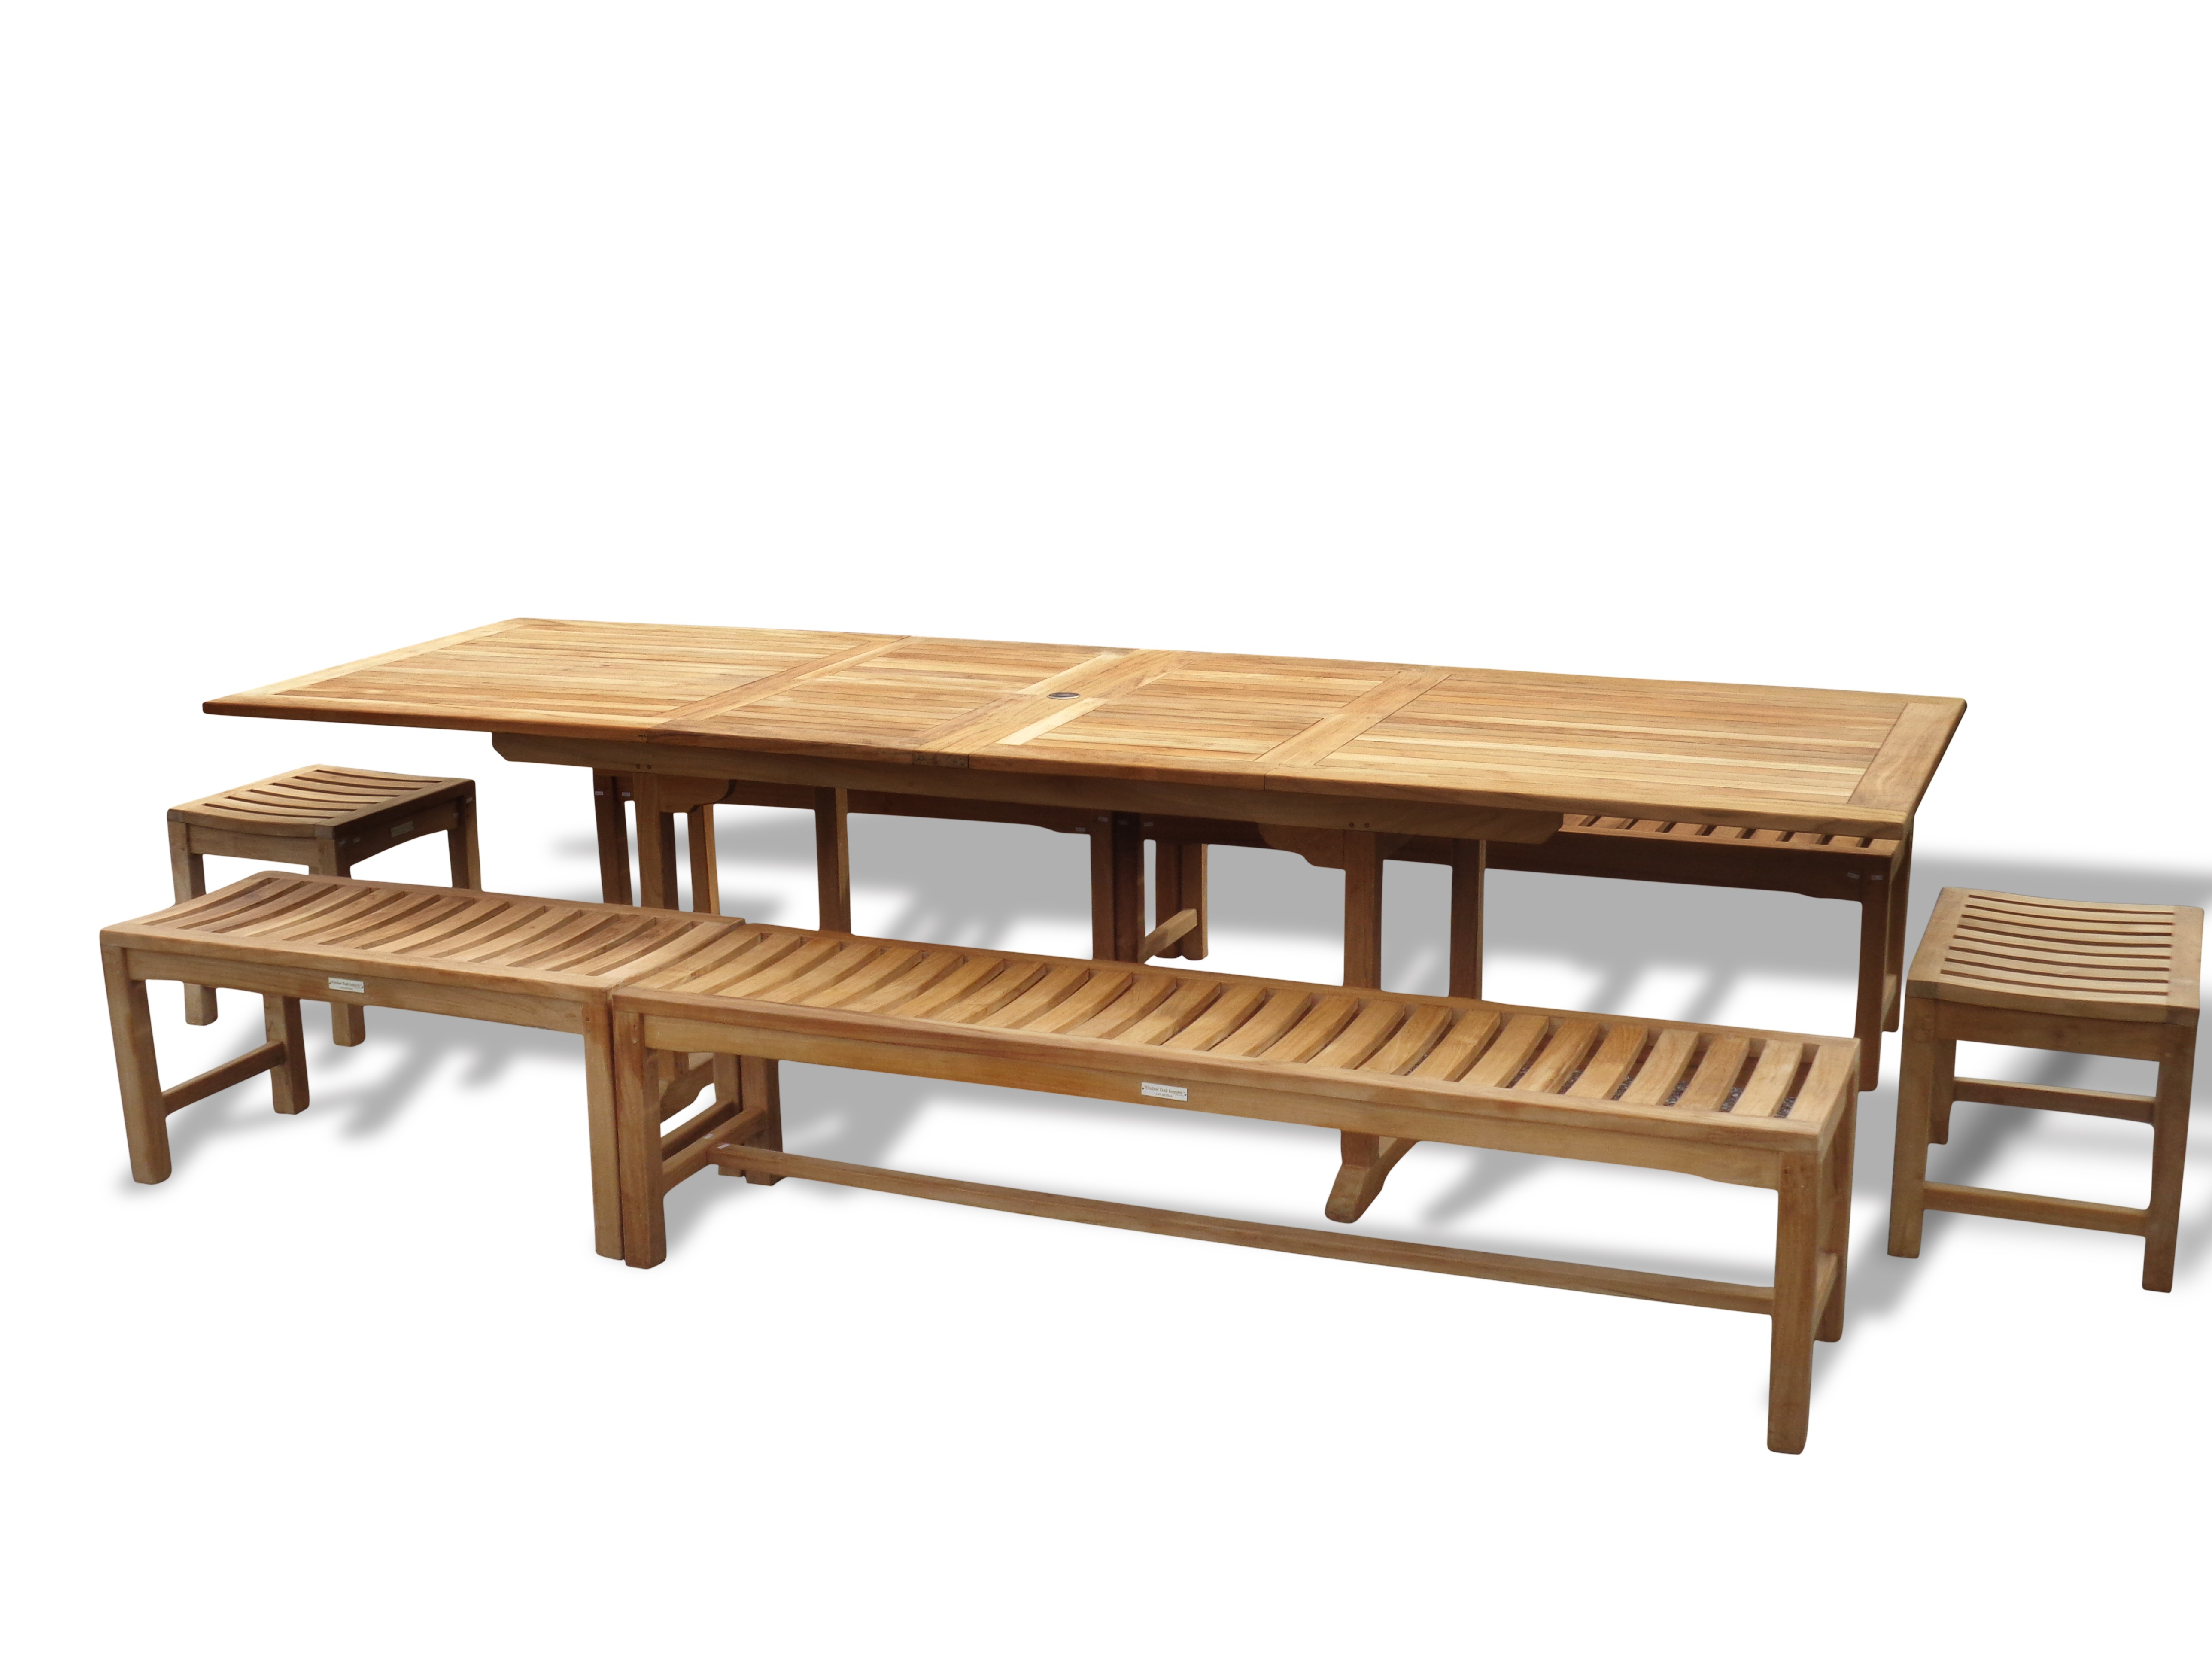 "Buckingham 108"" x 39"" Double Leaf Rectangular Extension Table w/6 Backless Benches...Seats 12 Adults"